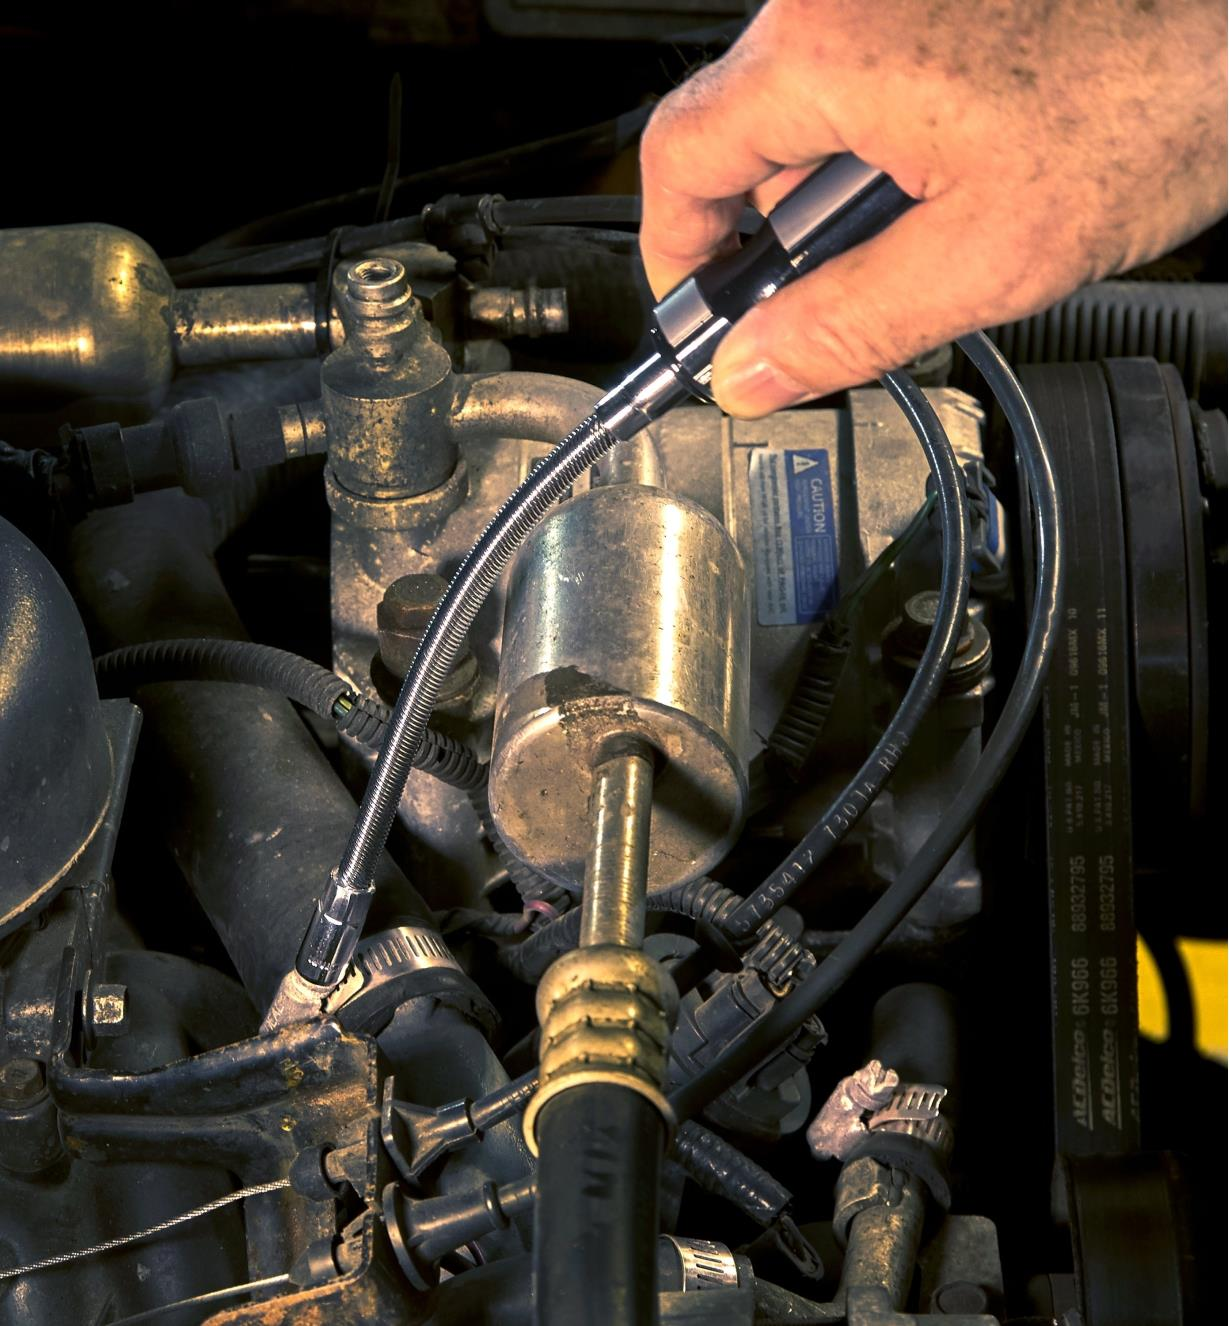 A person uses the flex-shaft nut driver to tighten a hose clamp in a truck's engine compartment